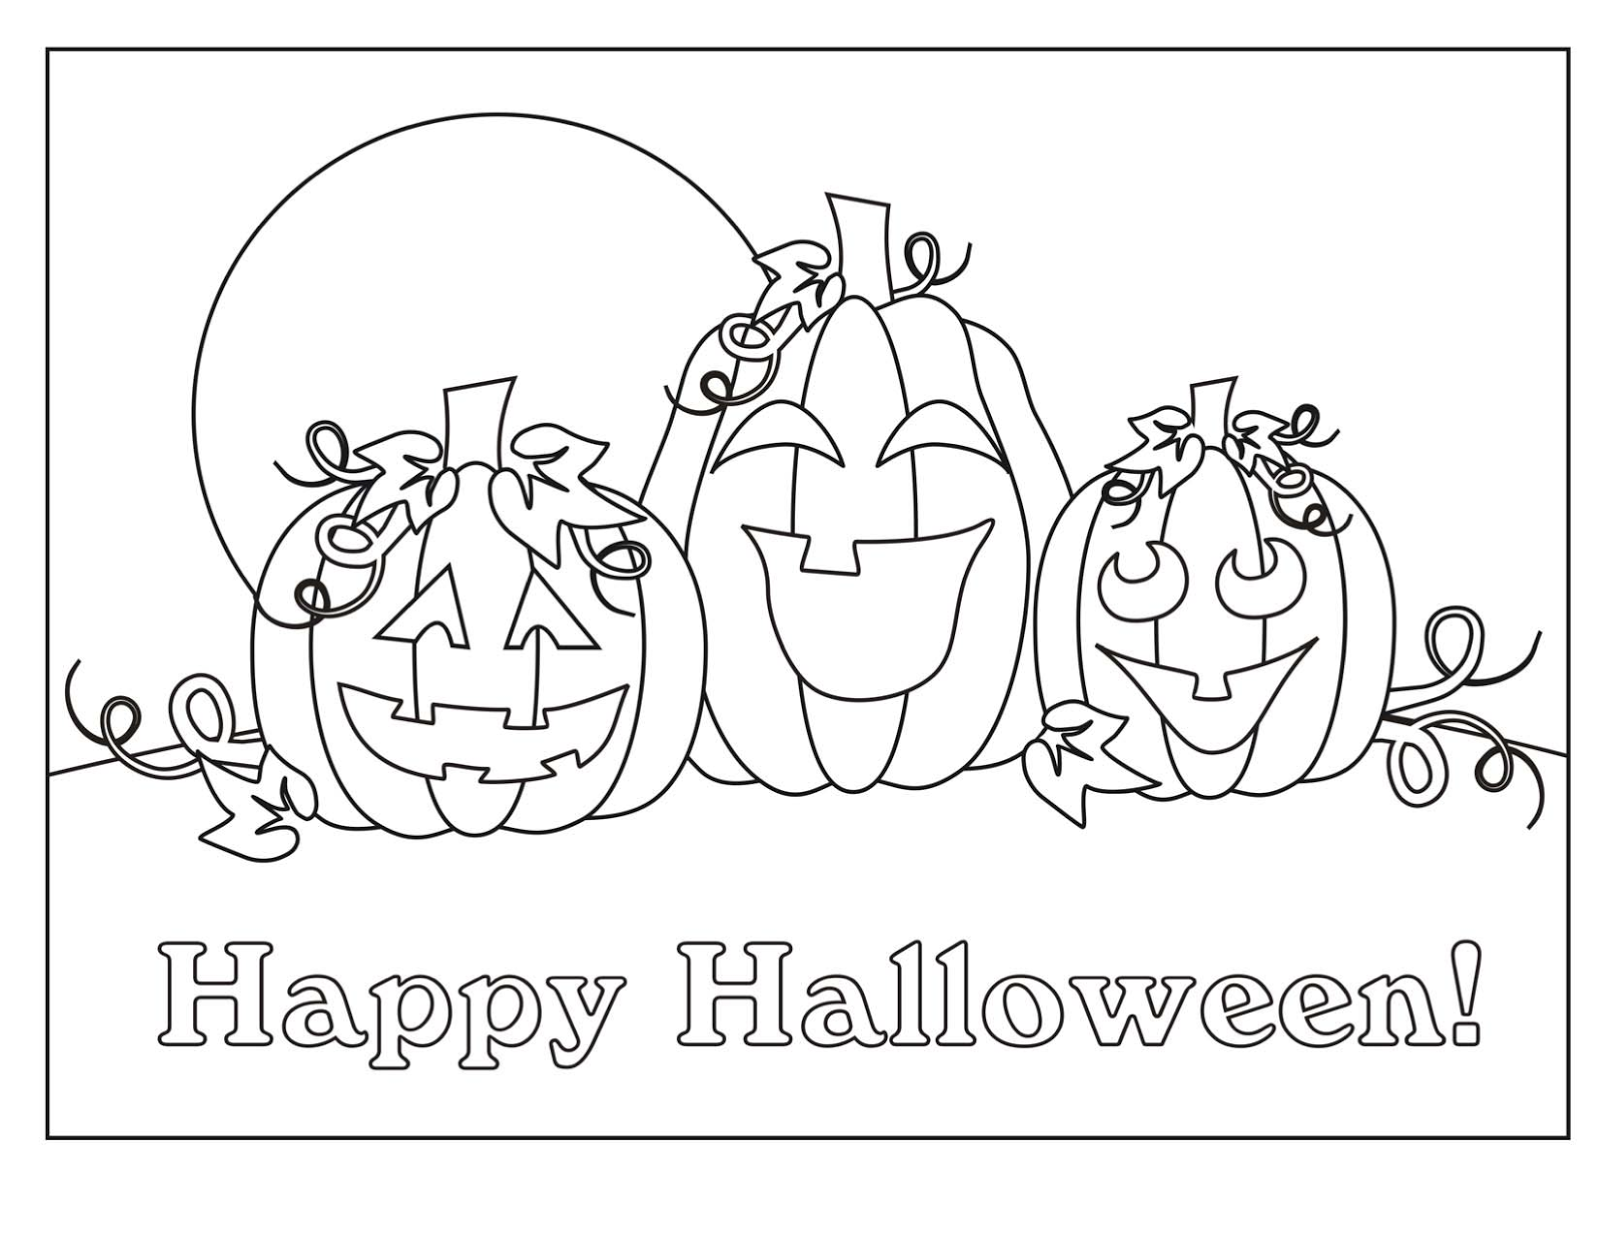 pia breum coloring pages - photo#36